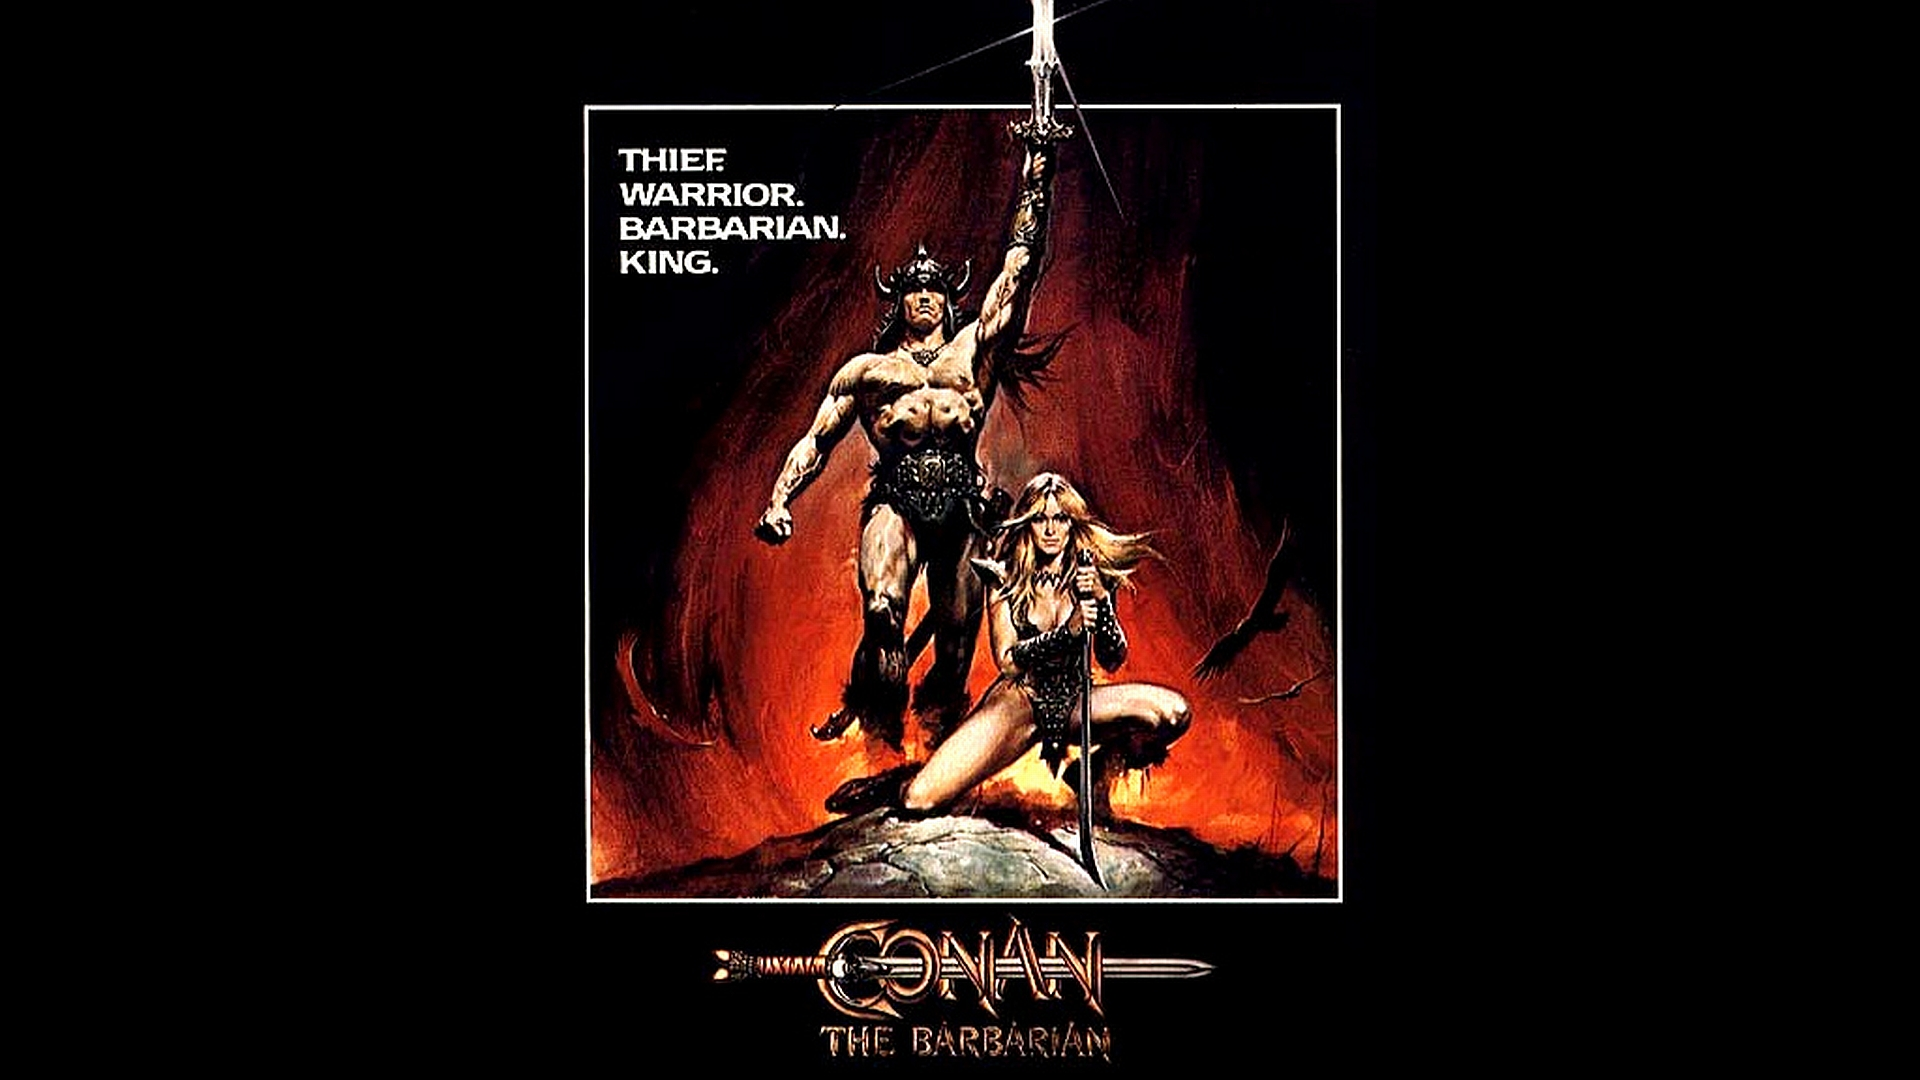 Conan The Barbarian Wallpaper 1920x1080 Movie Conan The Barbarian 1920x1080